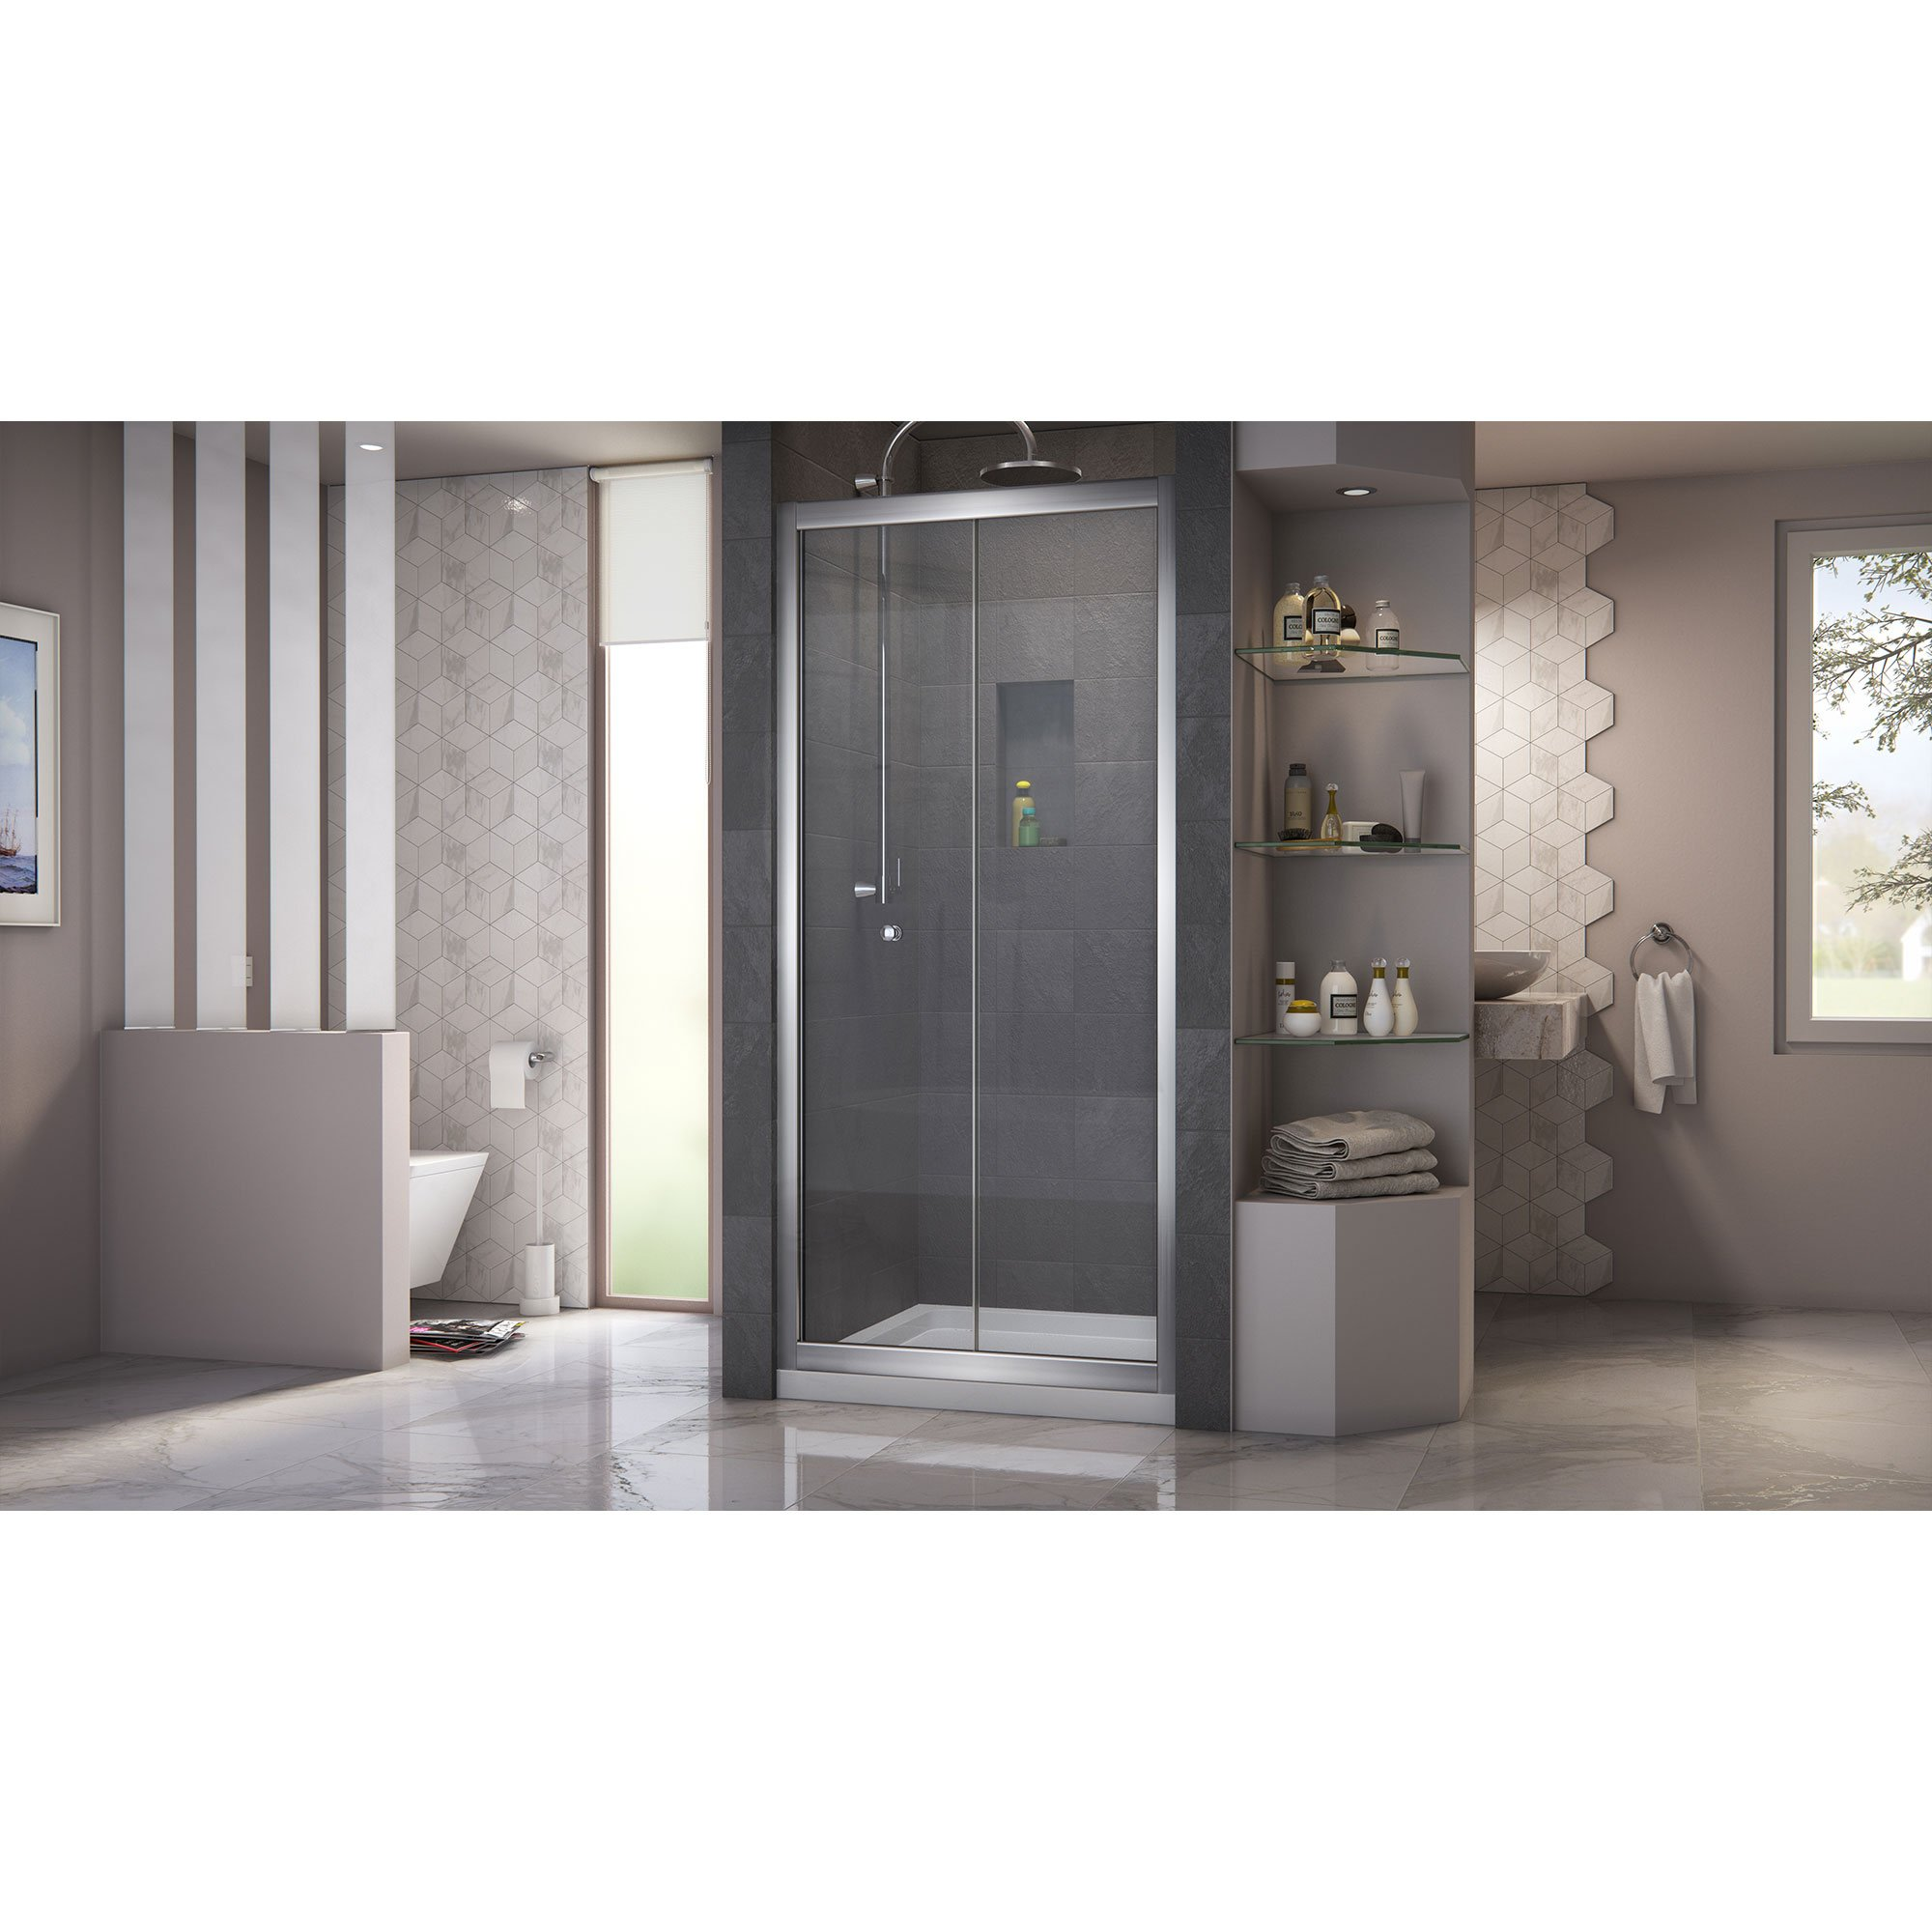 DreamLine Butterfly 34-35 1/2 in. Width, Frameless Bi-Fold Shower Door, 1/4'' Glass, Chrome Finish by DreamLine (Image #5)